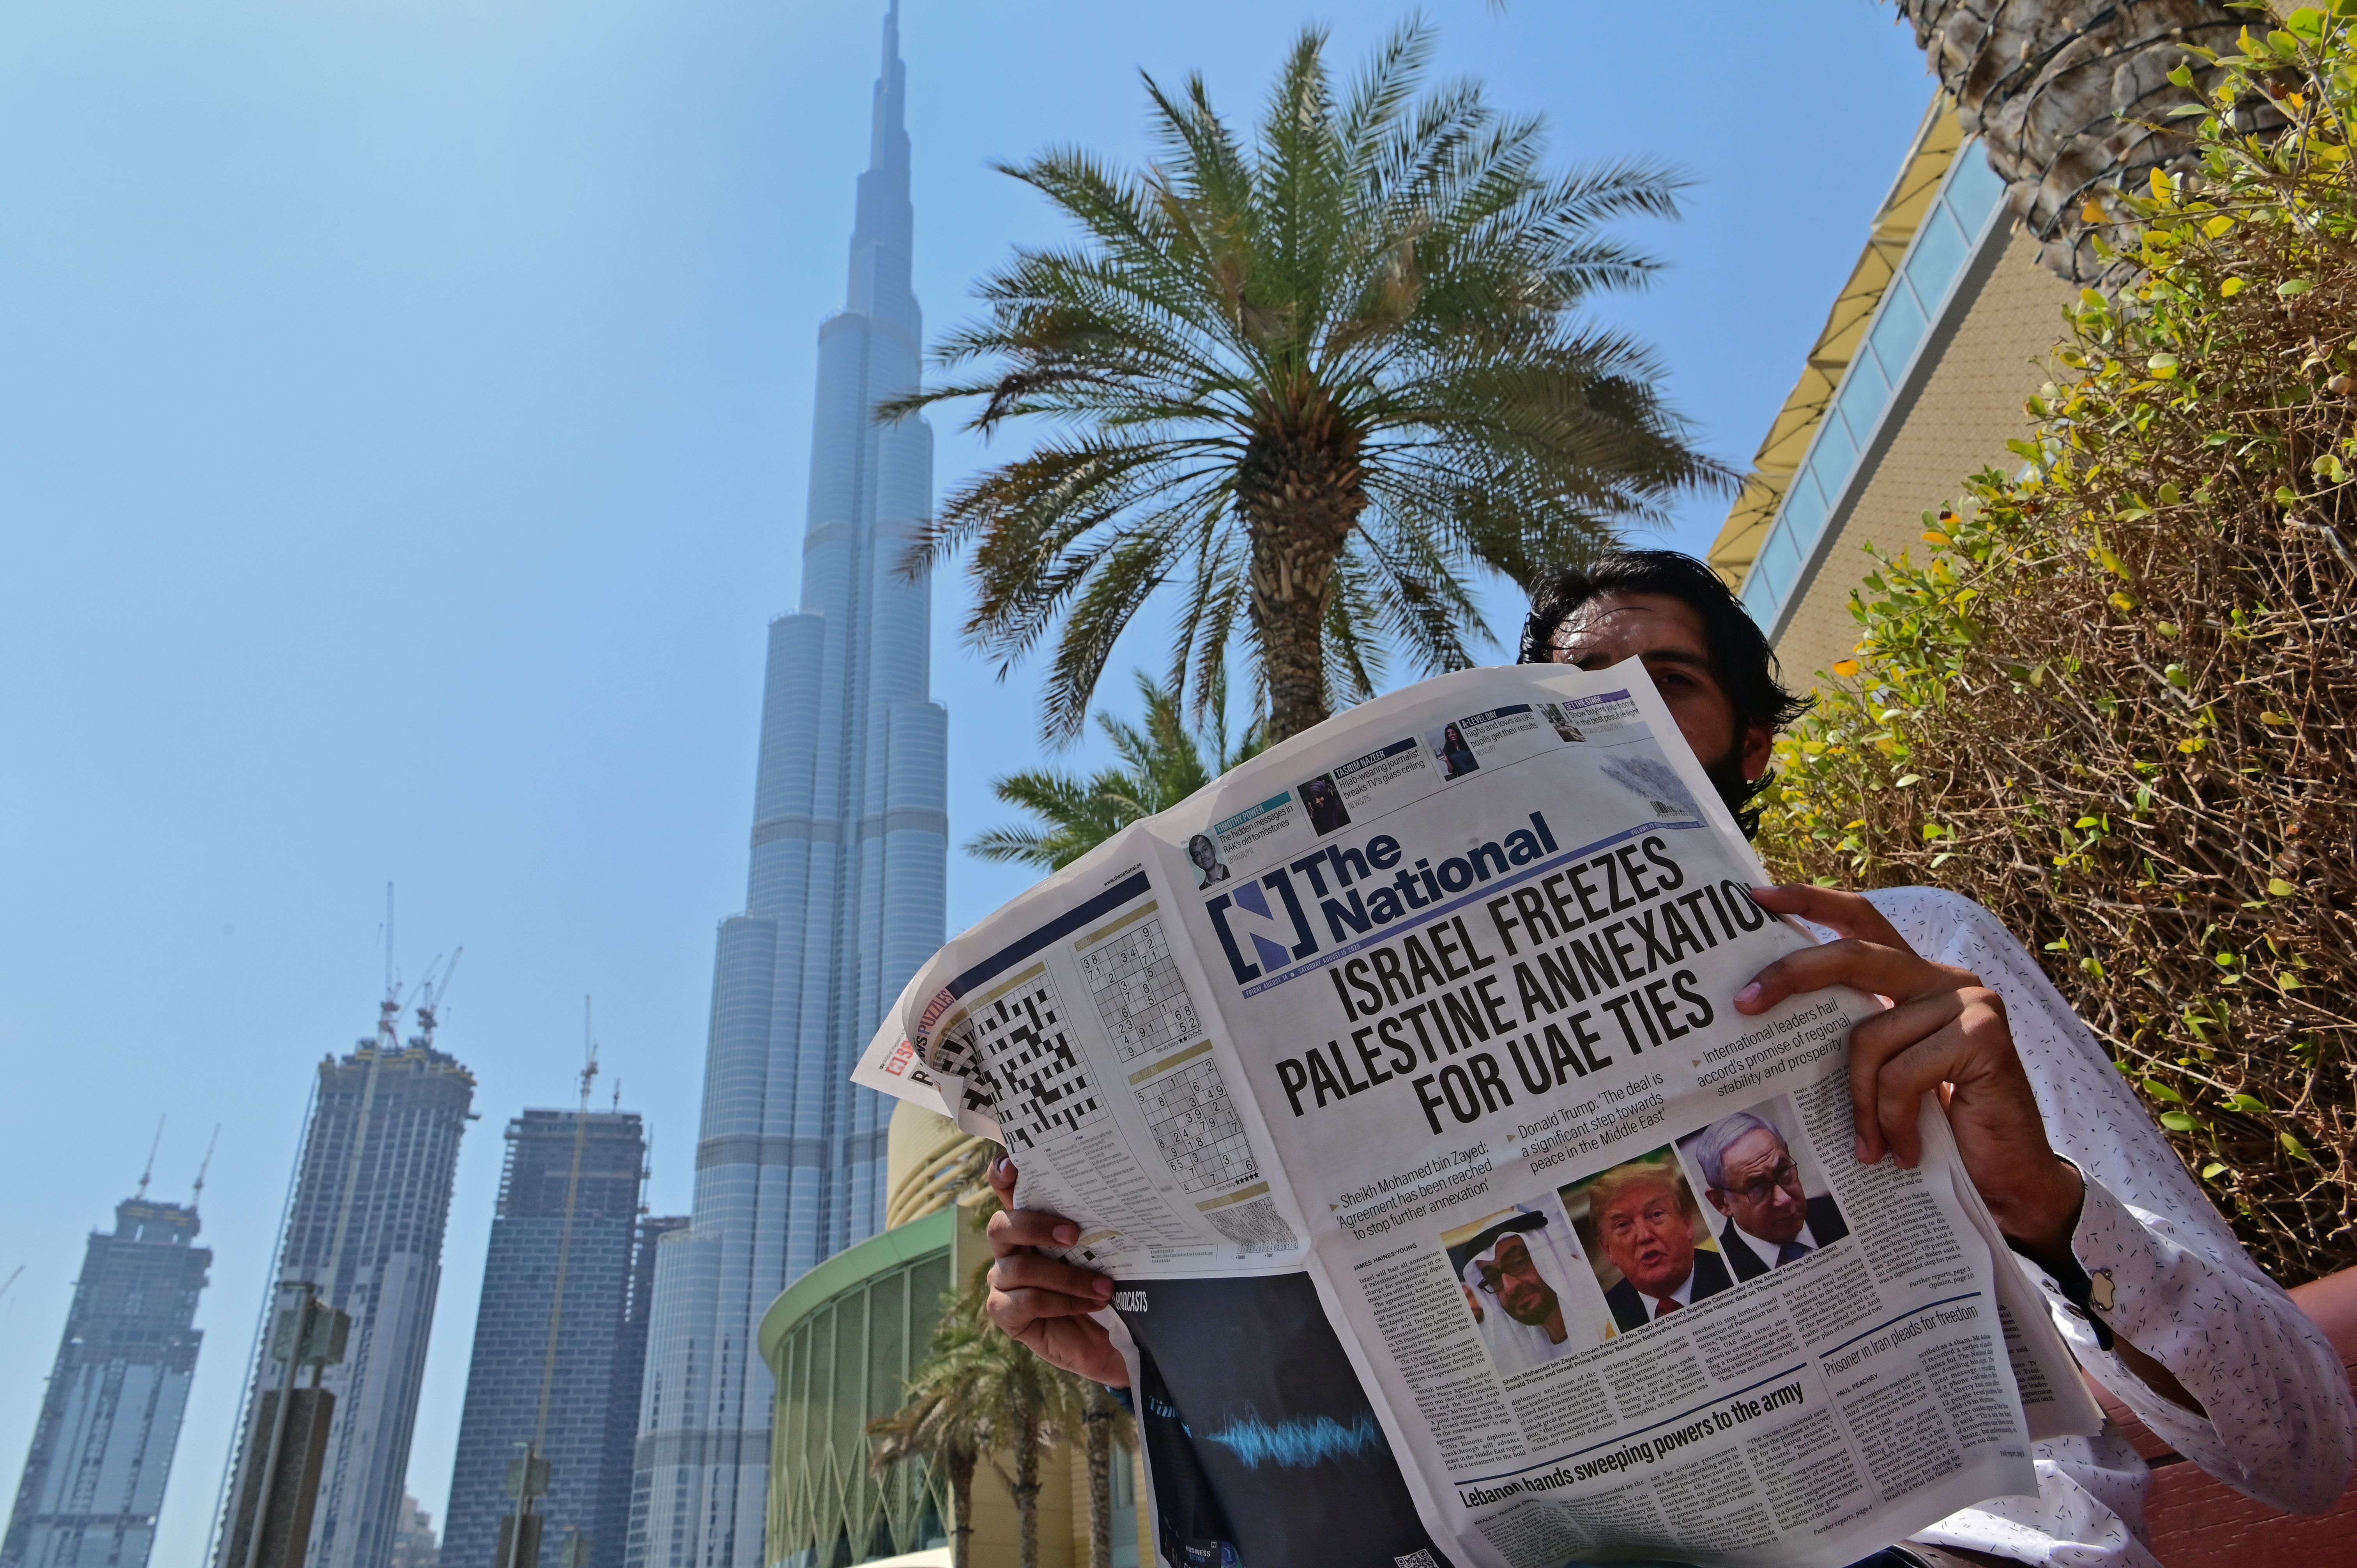 A man reads a copy of UAE-based The National newspaper near the Burj Khalifa, the tallest structure and building in the world since 2009, in the gulf emirate of Dubai on August 14, 2020, as the publication's headline reflects the previous day's news as Israel and the UAE agreed to normalise relations in a landmark US-brokered deal.